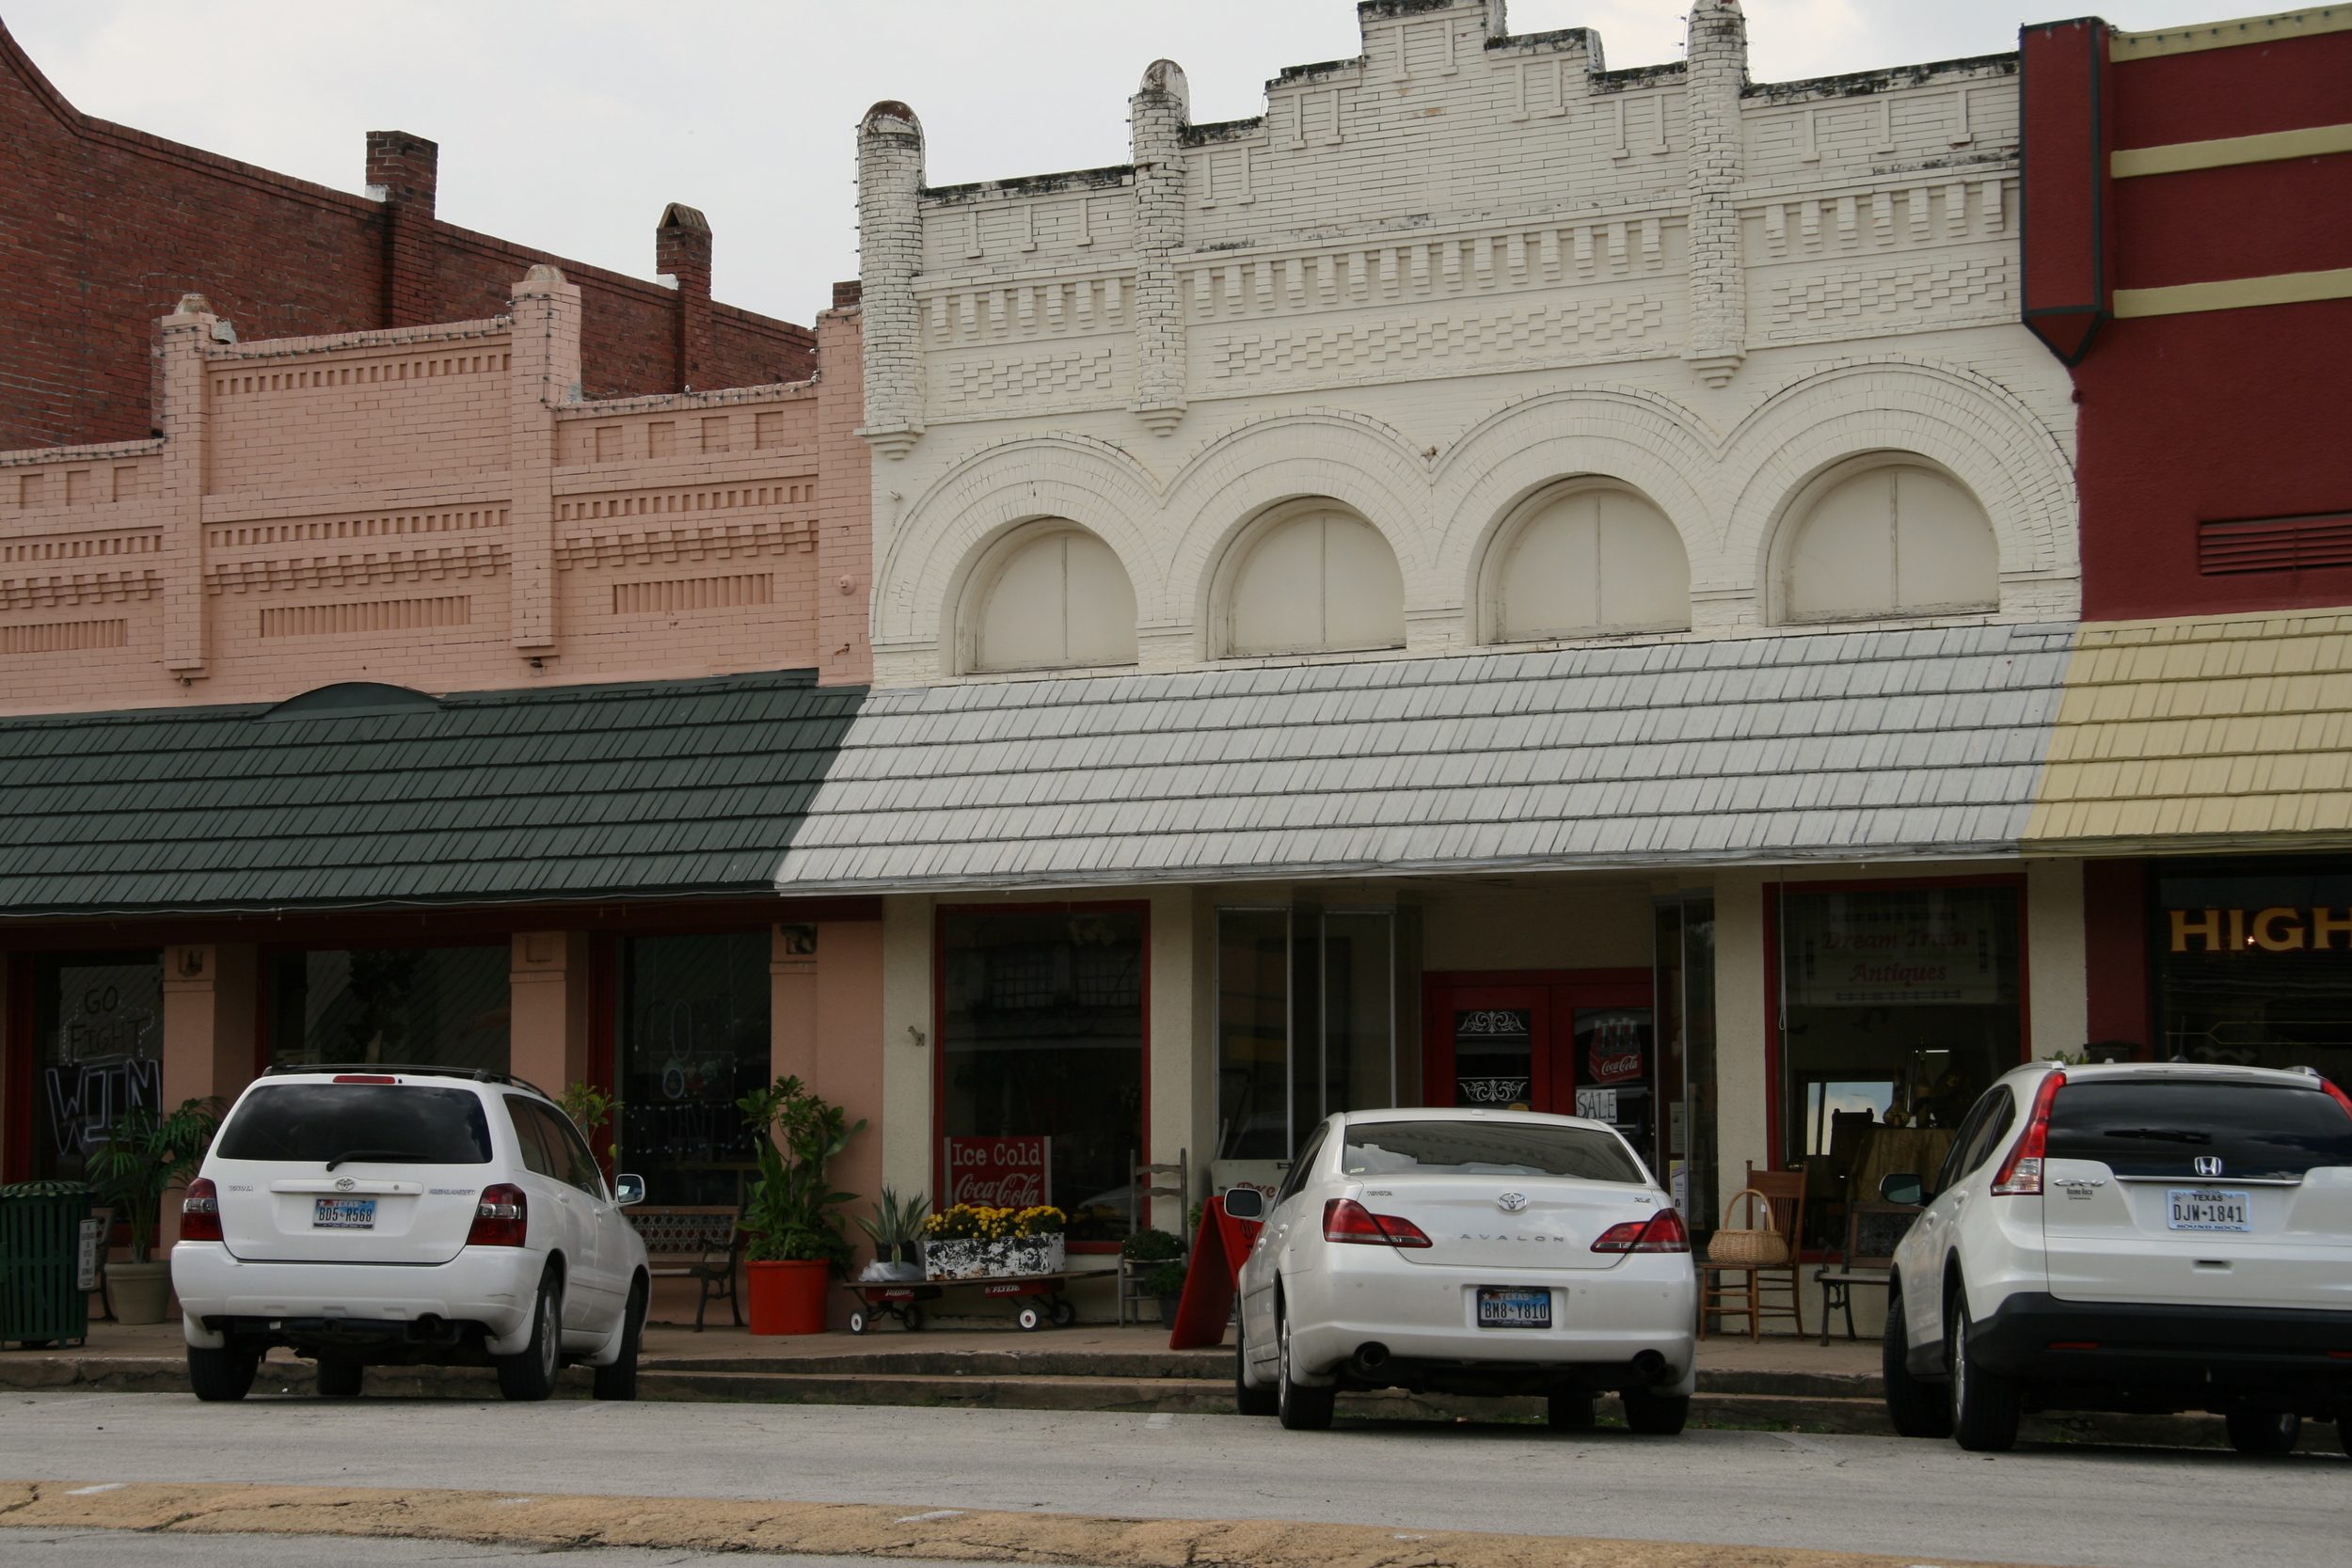 downtown Smithville